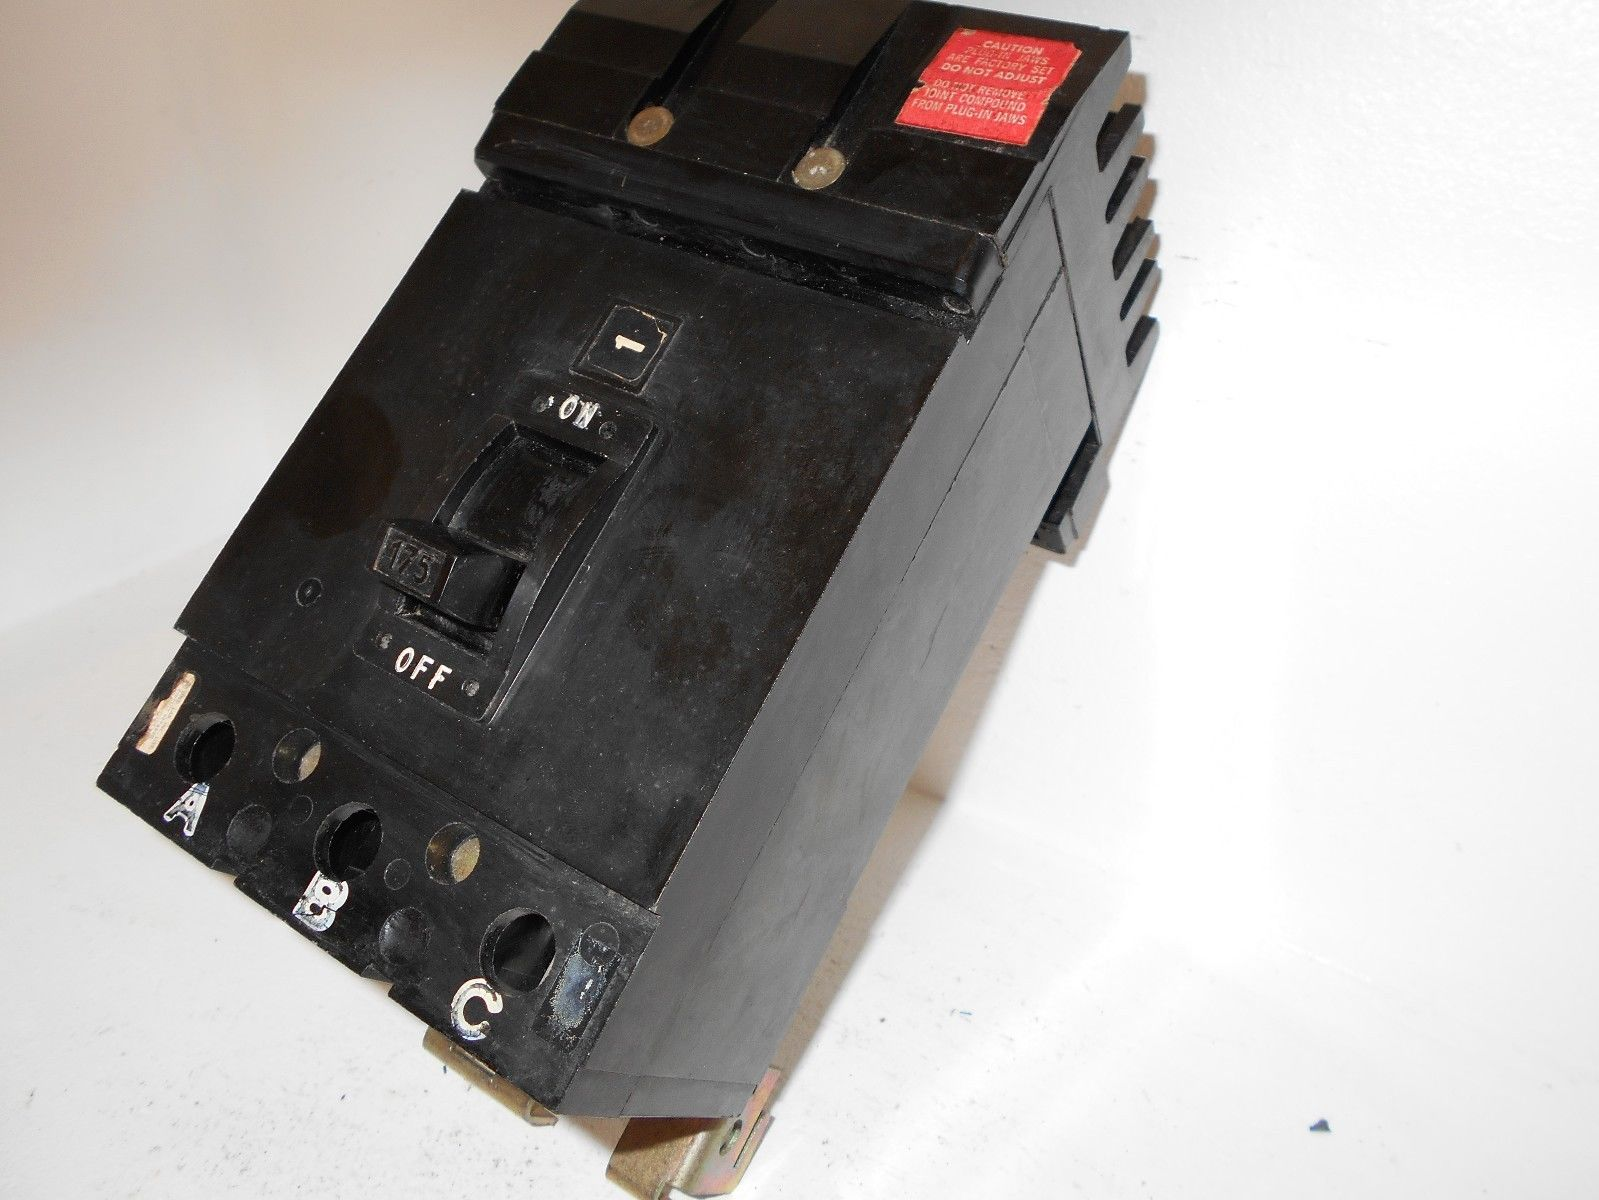 Square D Q232175 3 Pole 175 Amp 240v I Line Circuit Breaker Type Q2